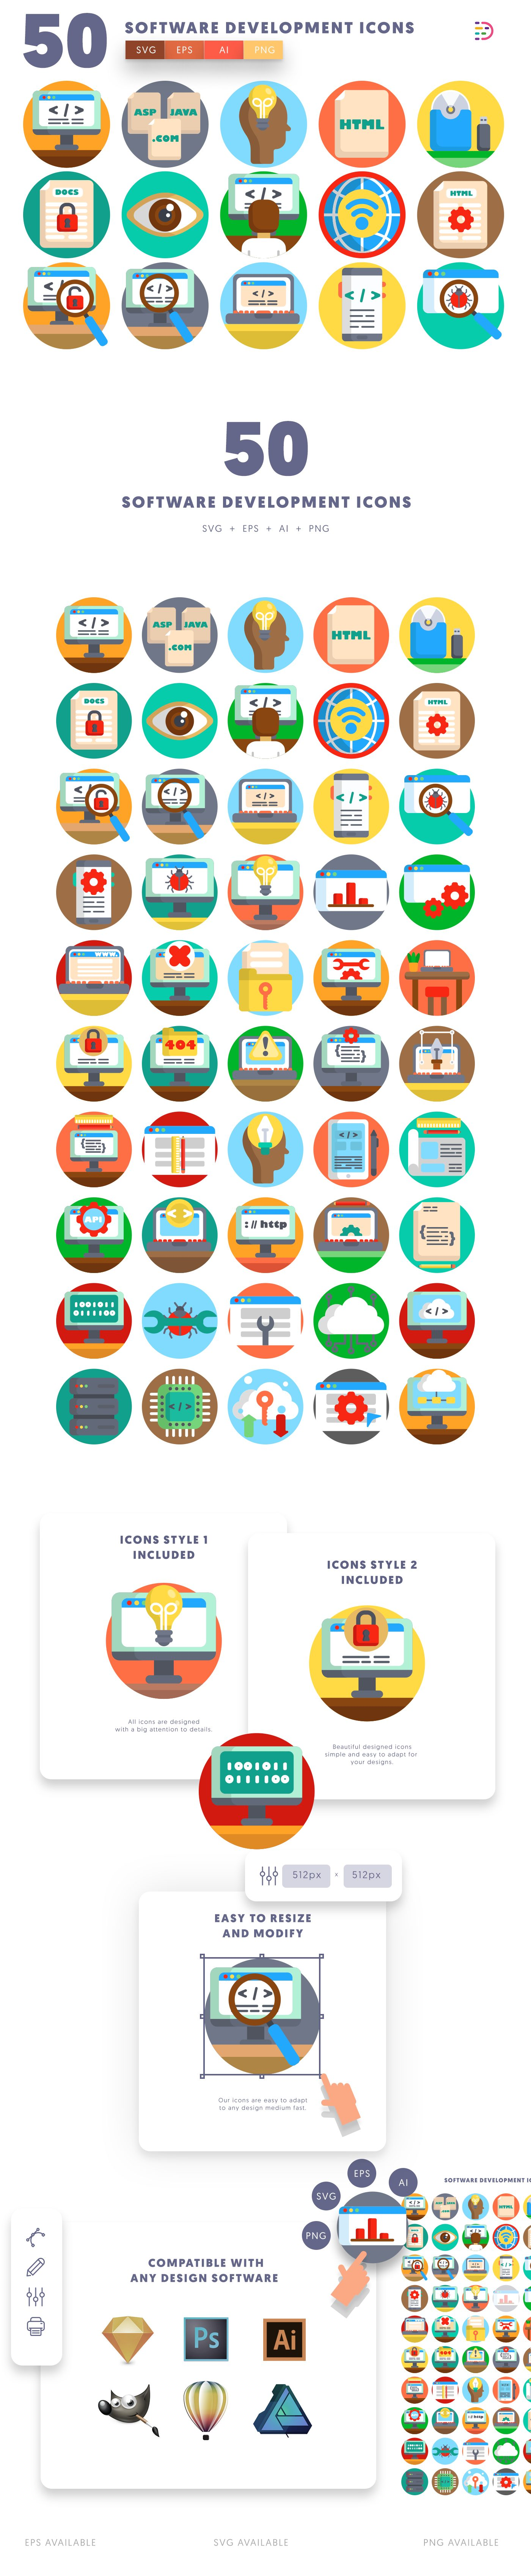 Software Development icons info graphic